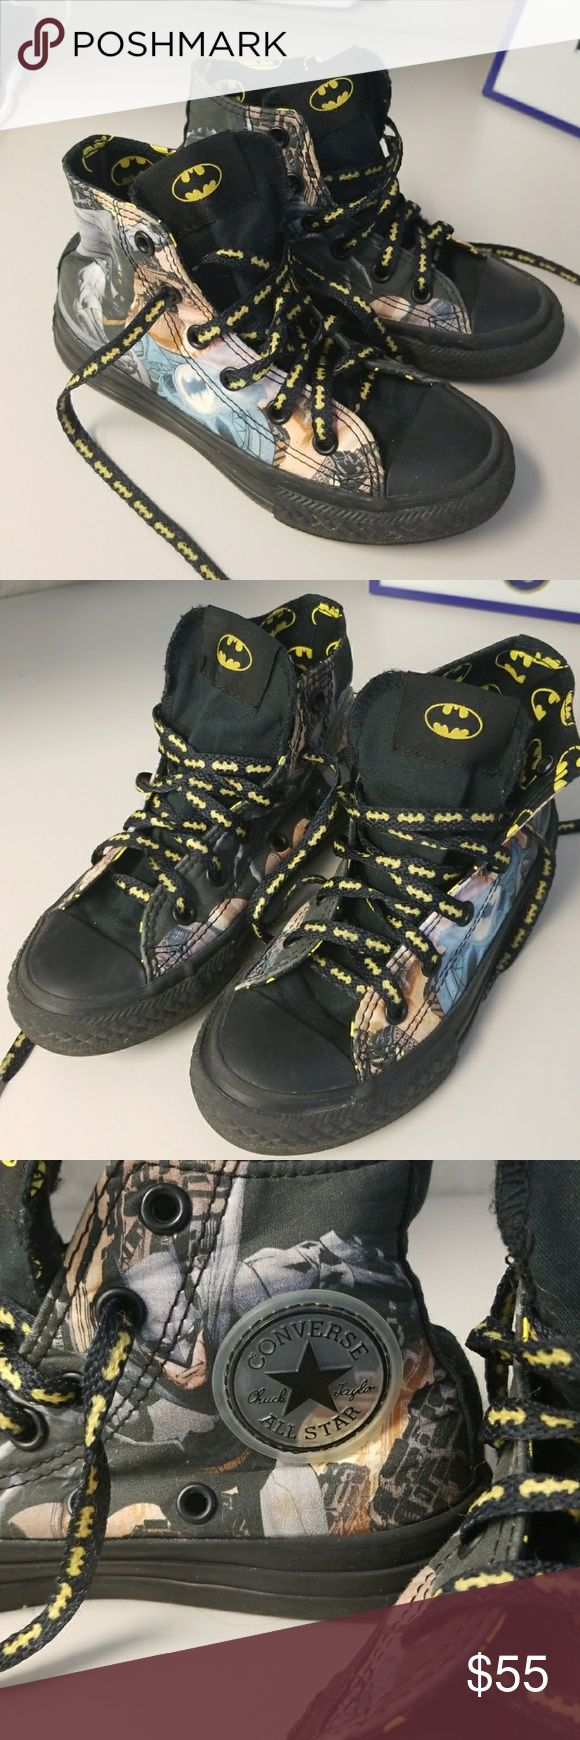 Batman Converse Chuck Taylors These are in like new condition  .only worn once. Boys size 12. Converse Batman DC Comics Chuck Taylors. Rare!! Converse Shoes Sneakers